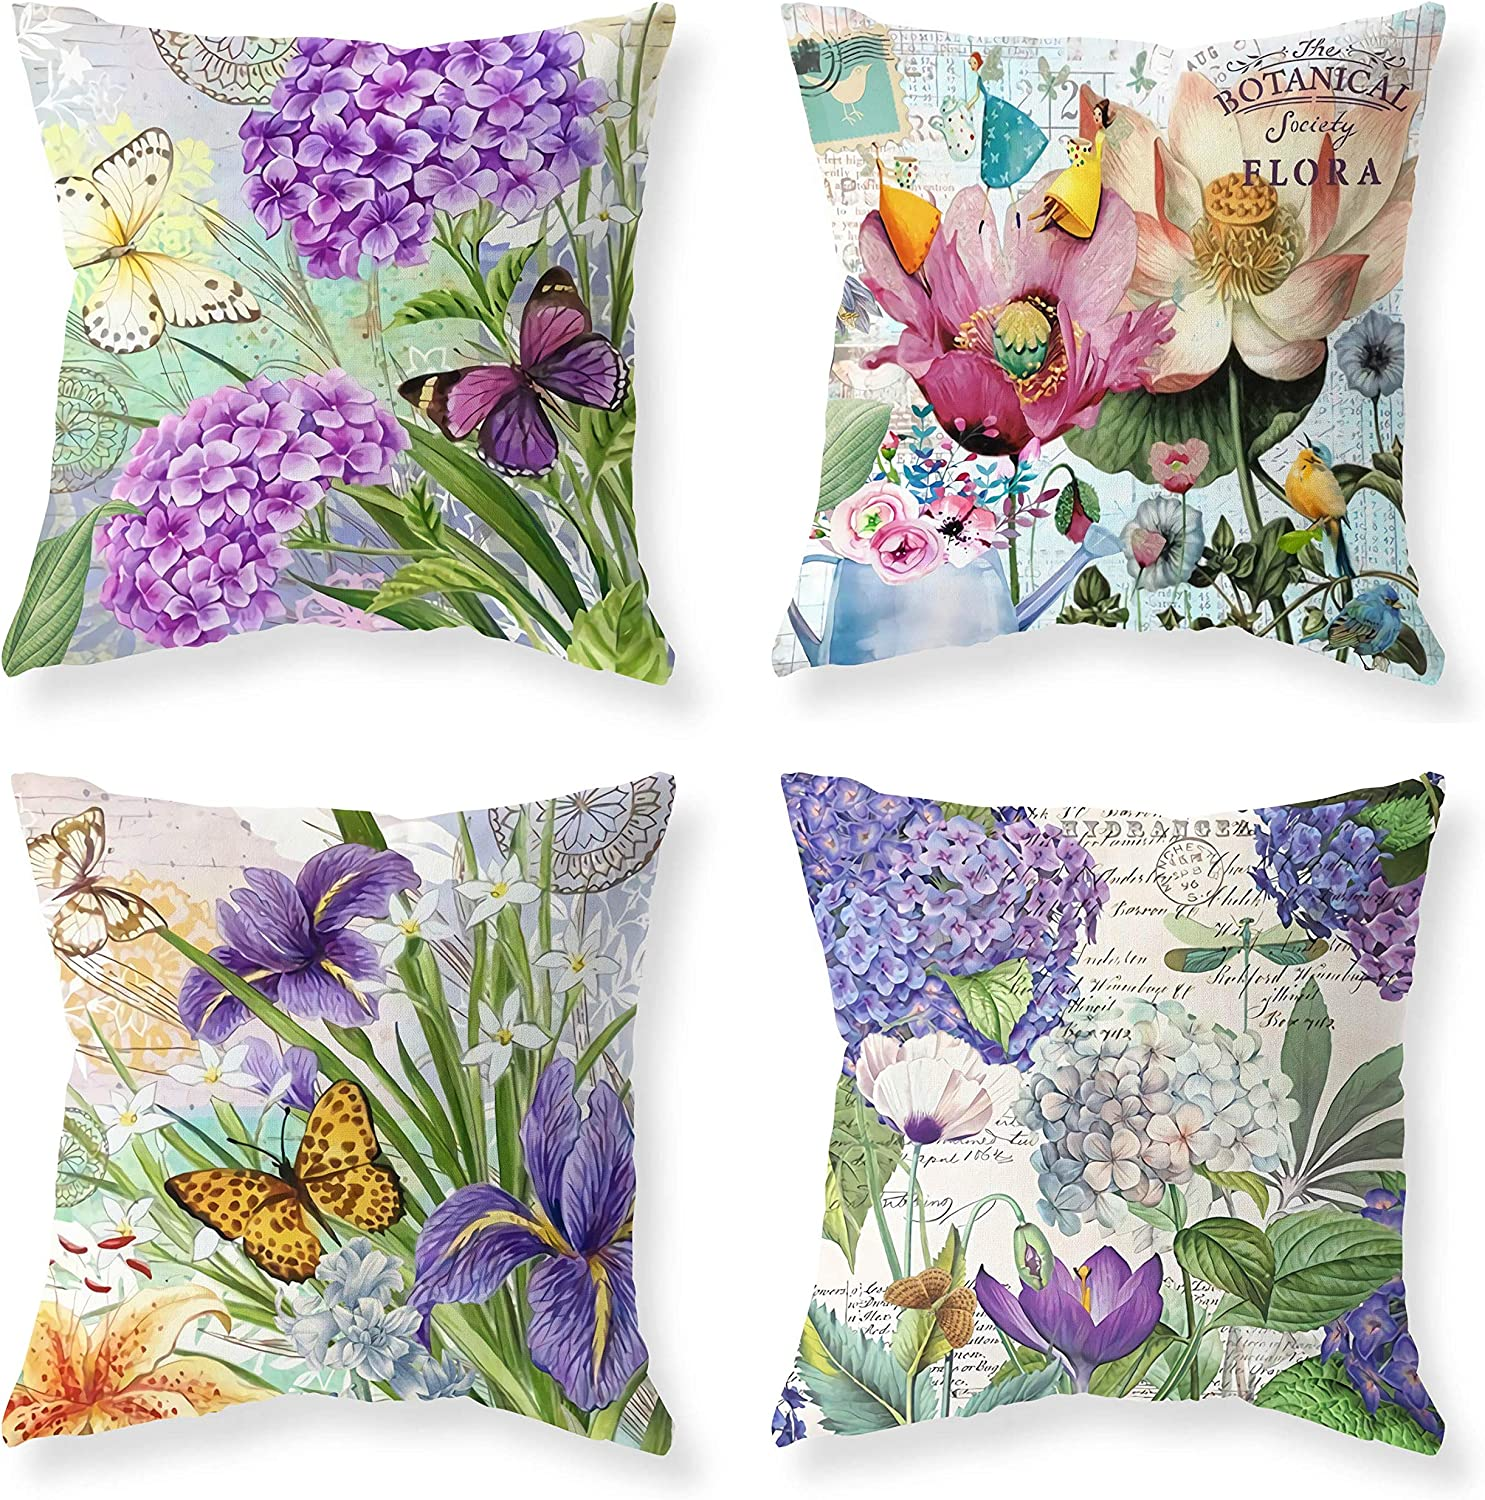 Purple Blue Flowers Butterfly & Dragonfiy Green Leaves Jungle Throw Pillow Farmhouse Outdoor Throw Pillow Cover Happy Summer Time Cotton Linen Pillow Case Home Cover for Sofa 18 x 18 Set of 4